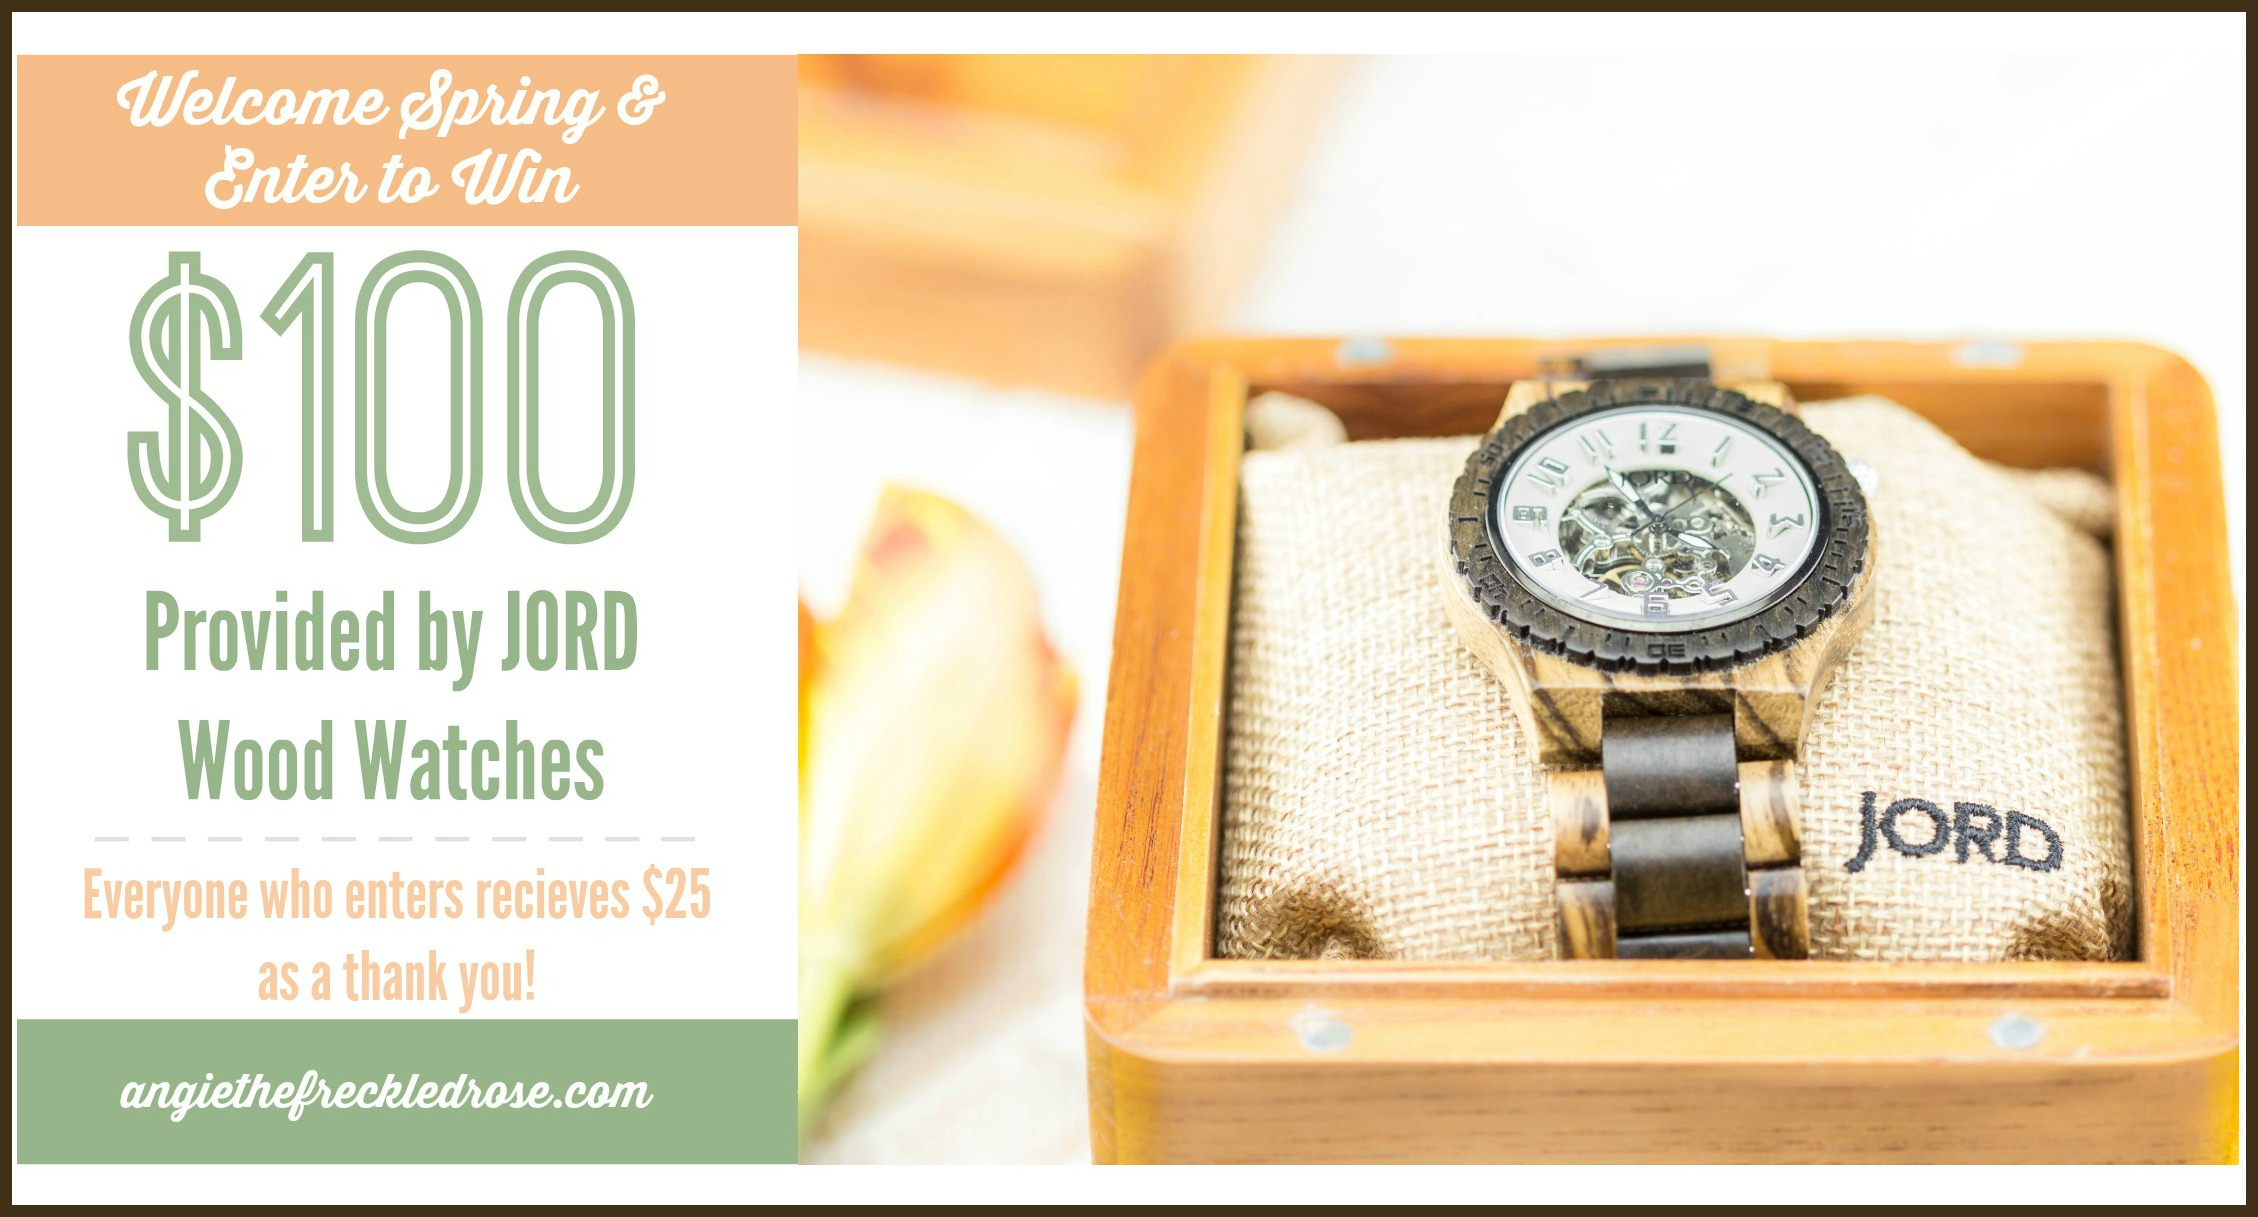 It's Finally Time for Spring! | Enter to Win $100 Provided by JORD wood watches | Angie The Freckled Rose